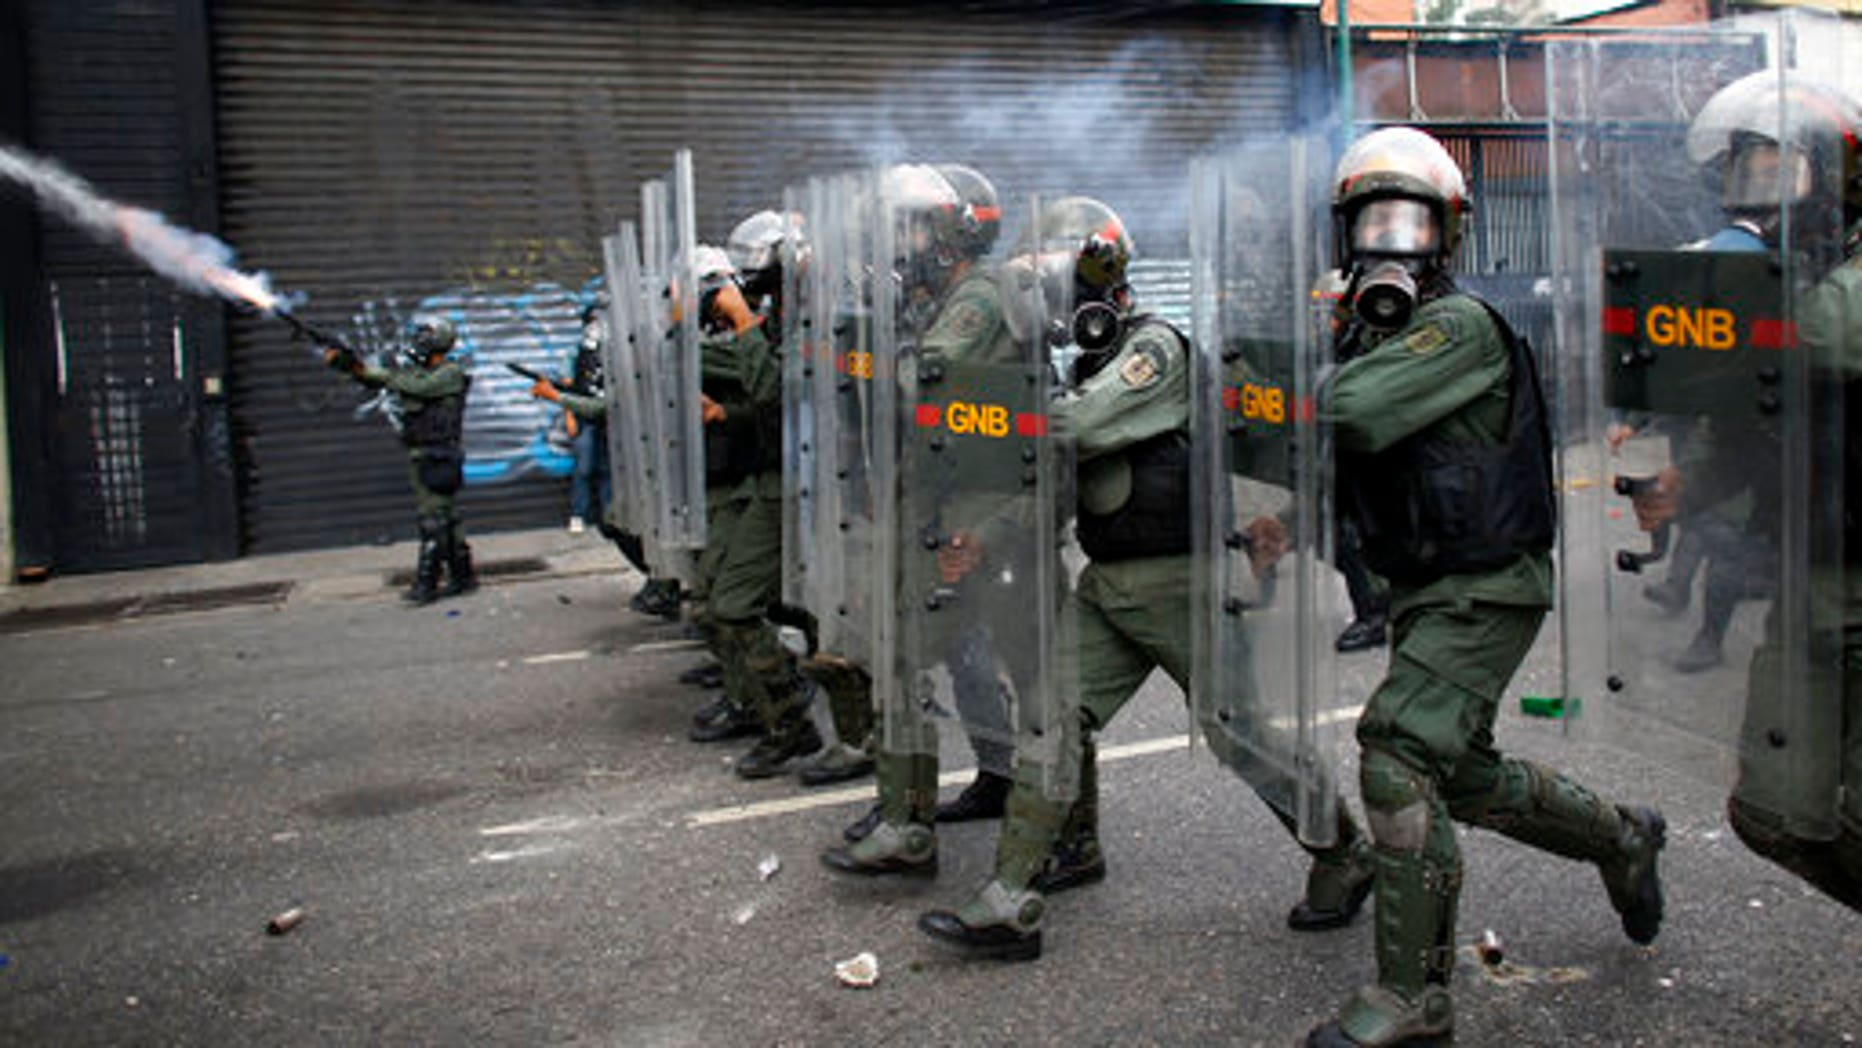 Bolivarian National Guards block protesters from reaching the national ombudsman office in Caracas, Venezuela, April 26, 2017.